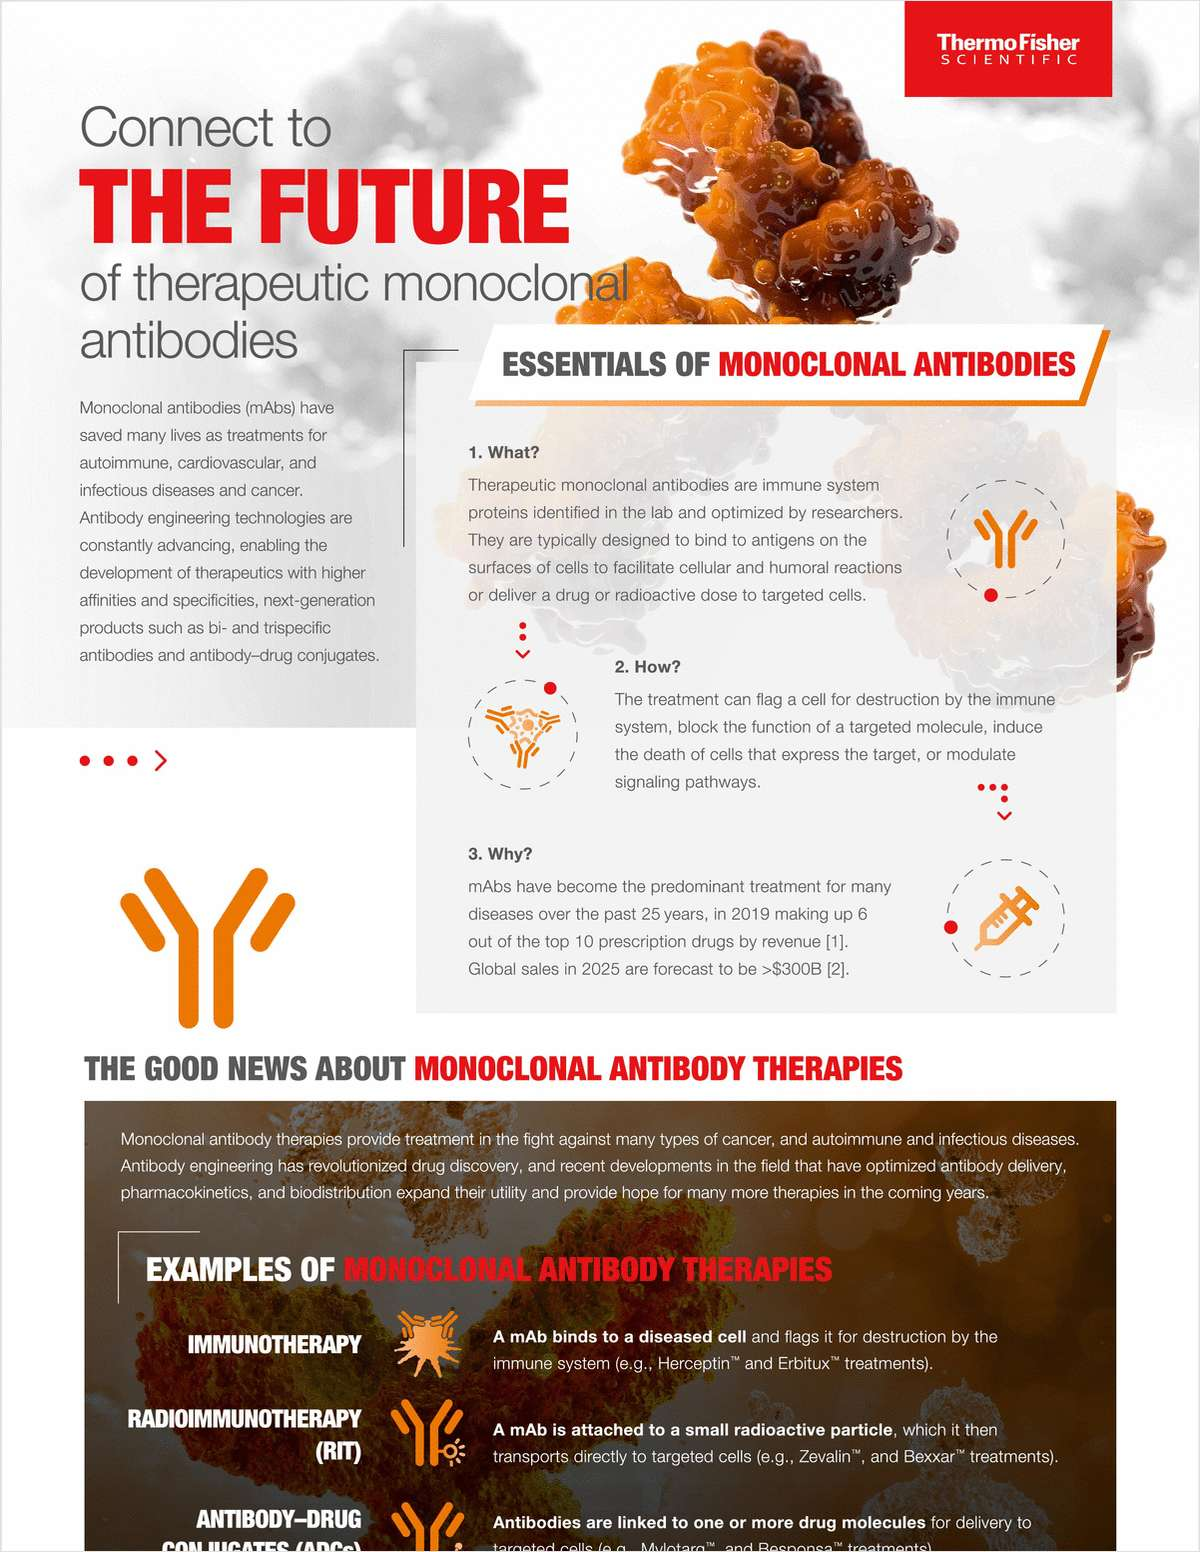 Connect to The Future of Therapeutic Monoclonal Antibodies